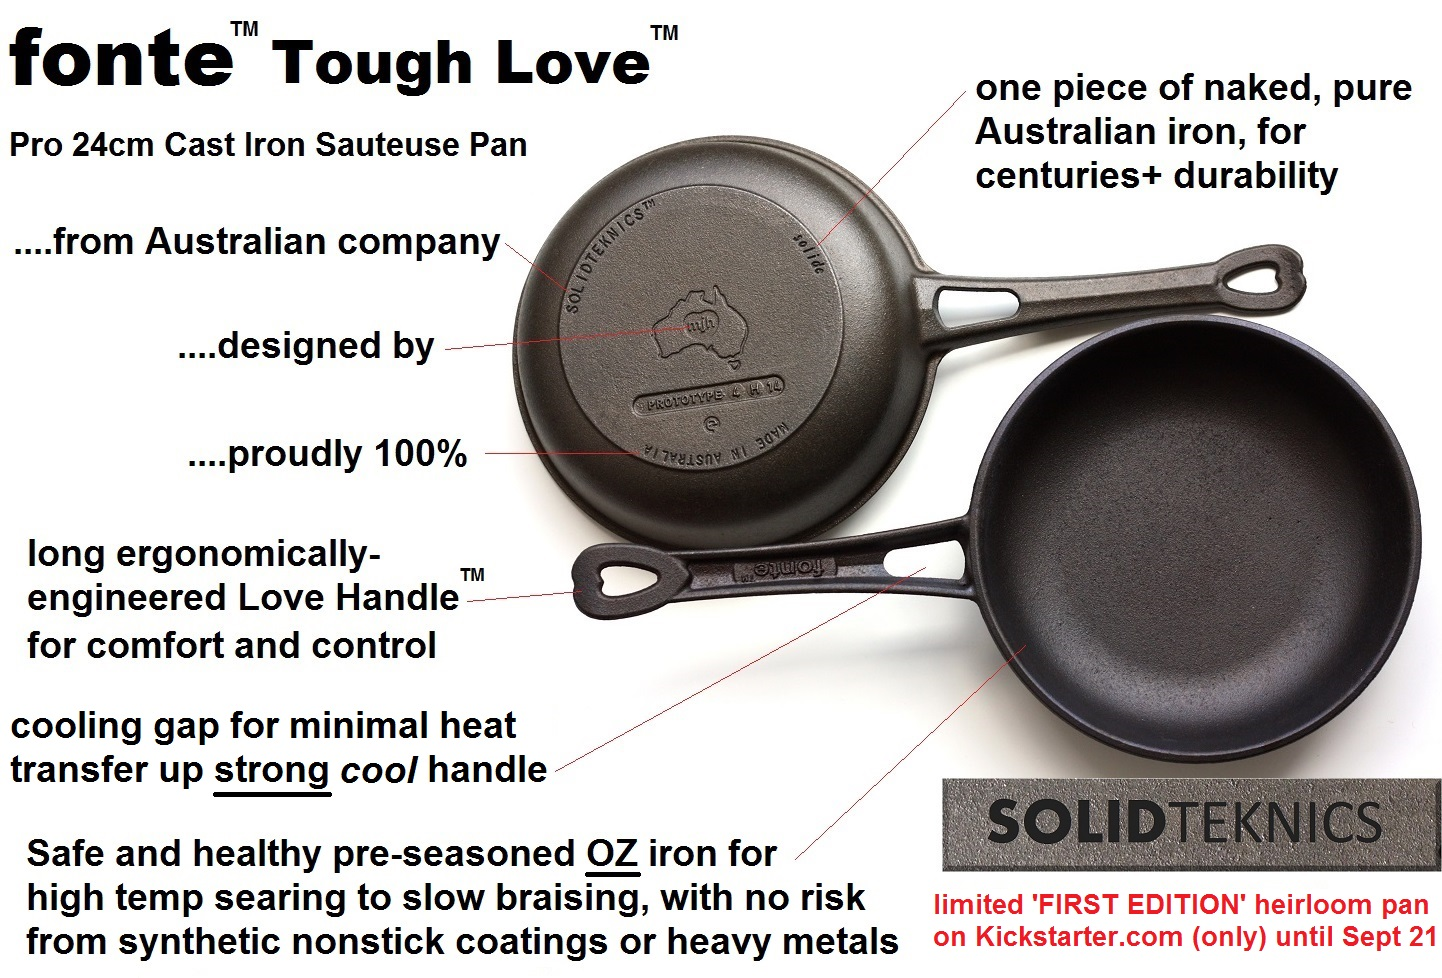 That's a LOT of extra benefits for say $80 extra investment.......click pic to go to Kickstarter for more detail.